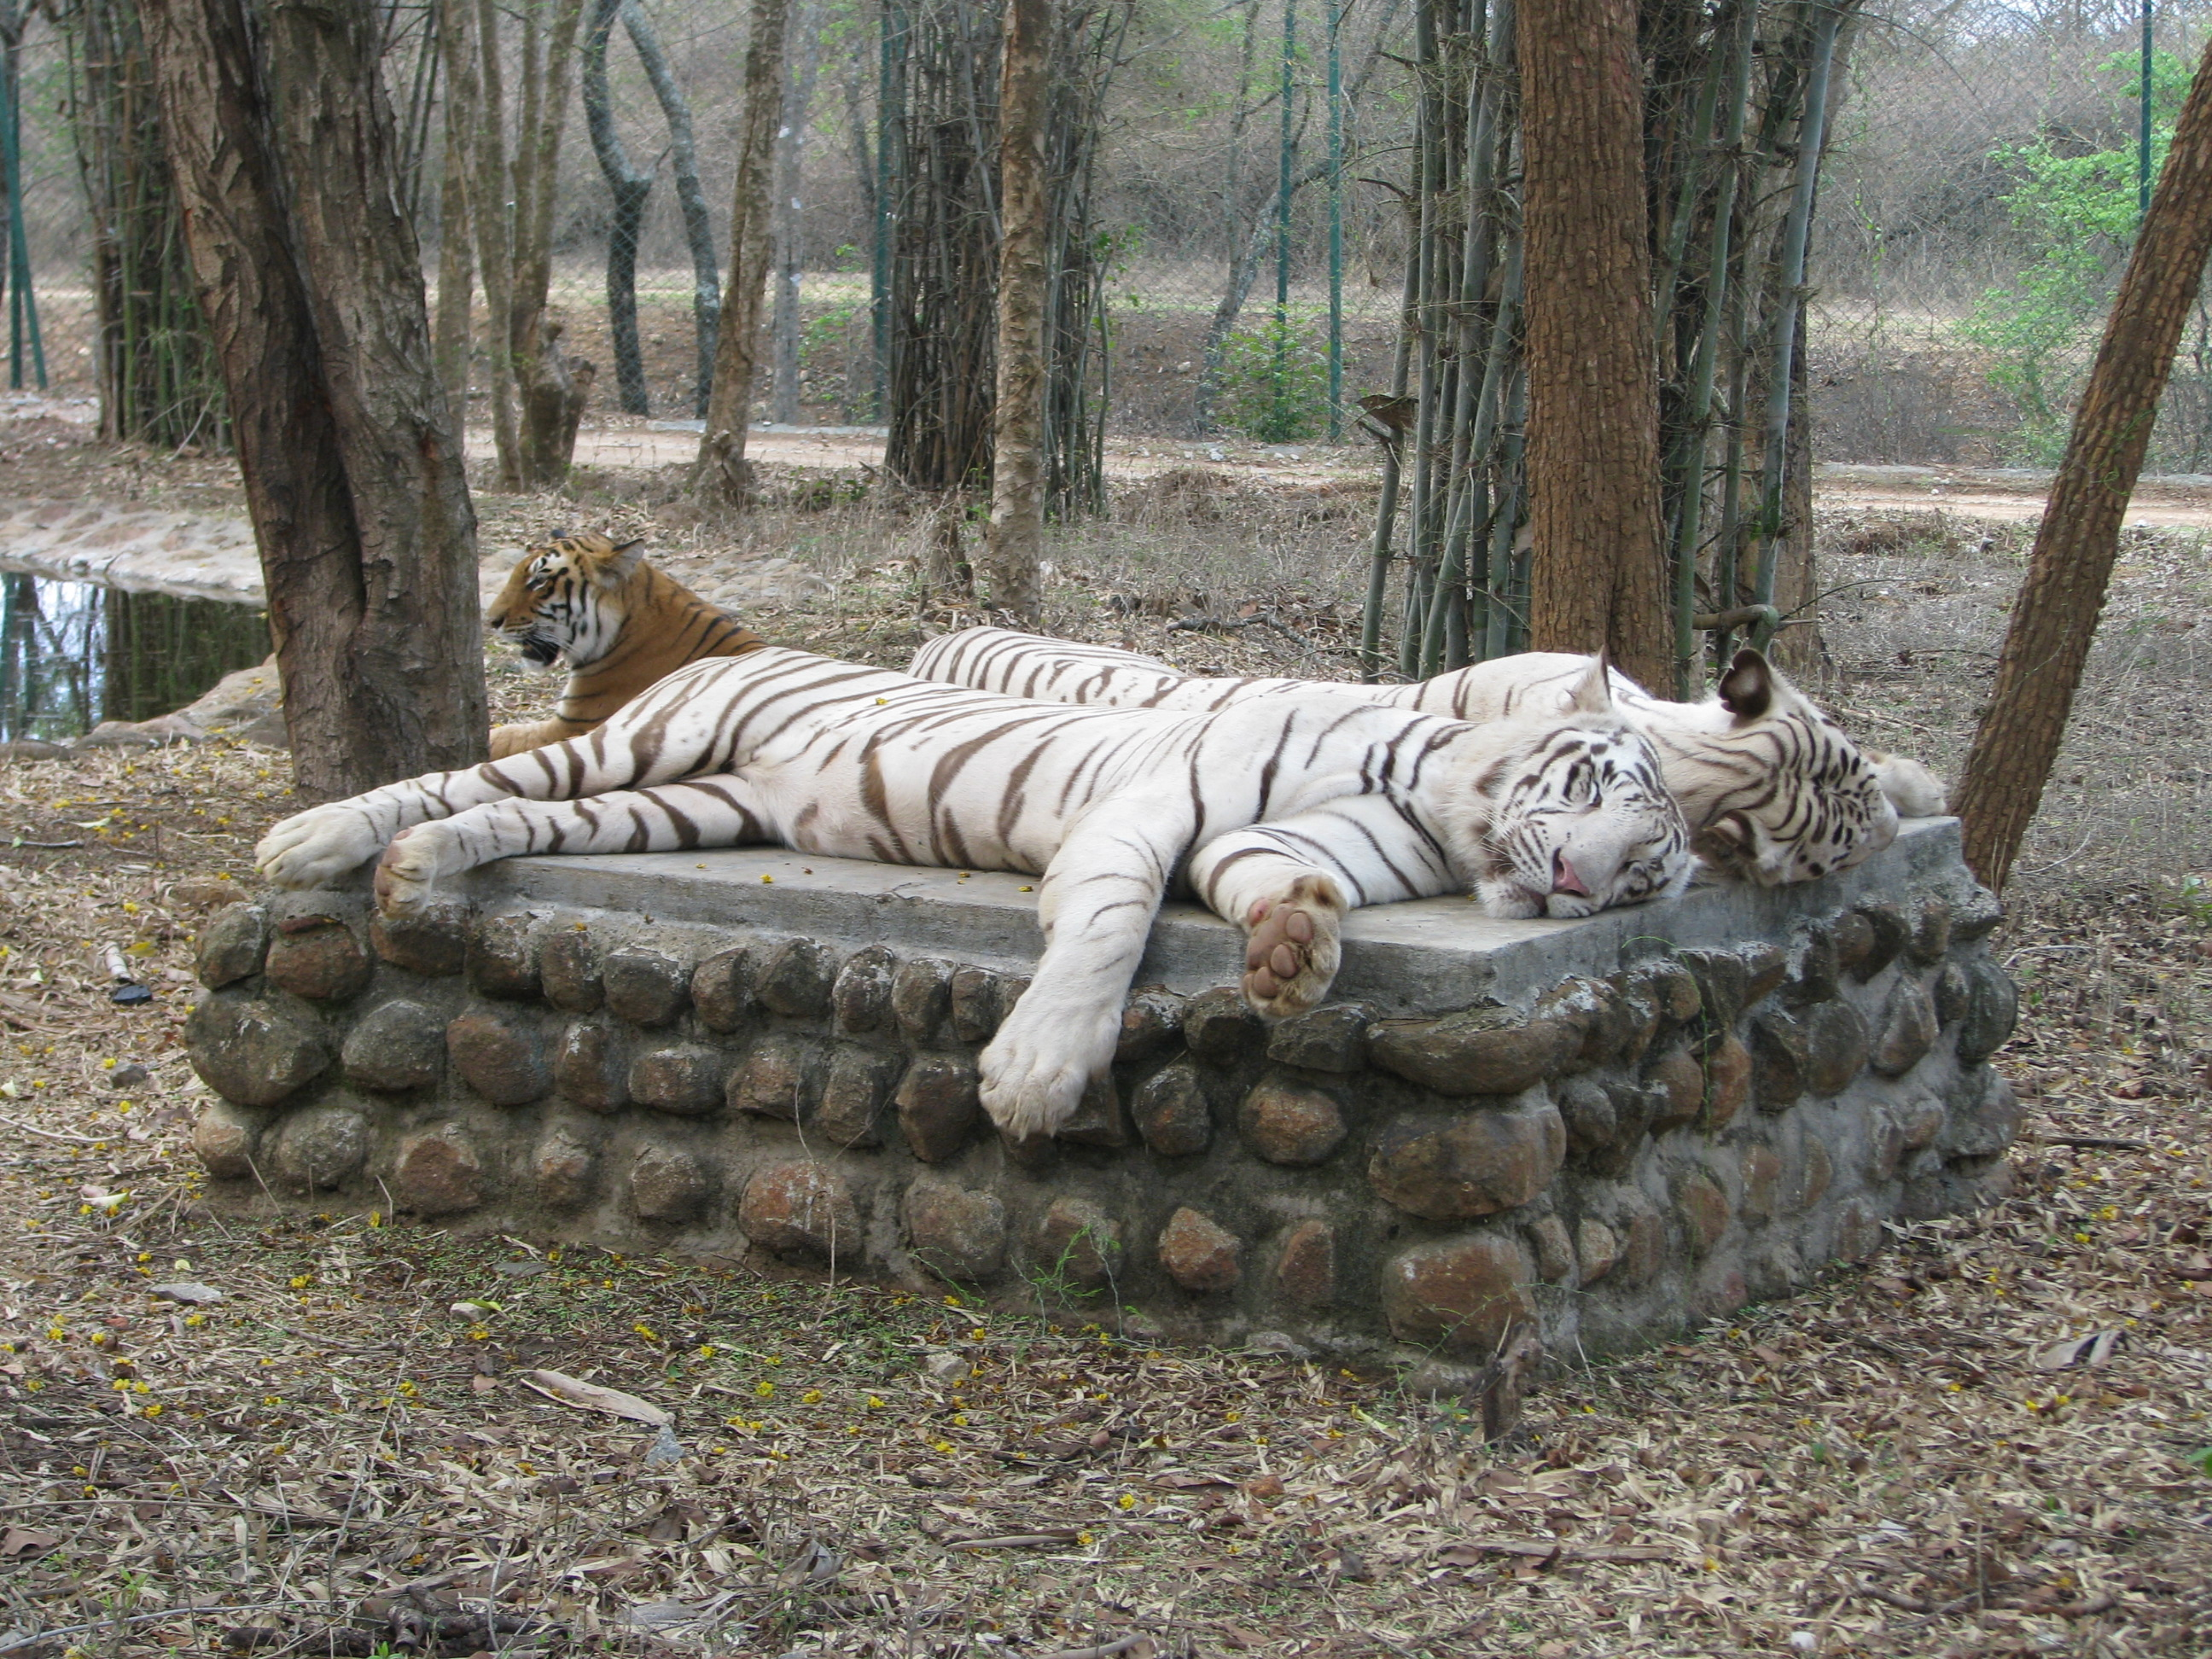 Bannerghatta national park address in bangalore dating 2